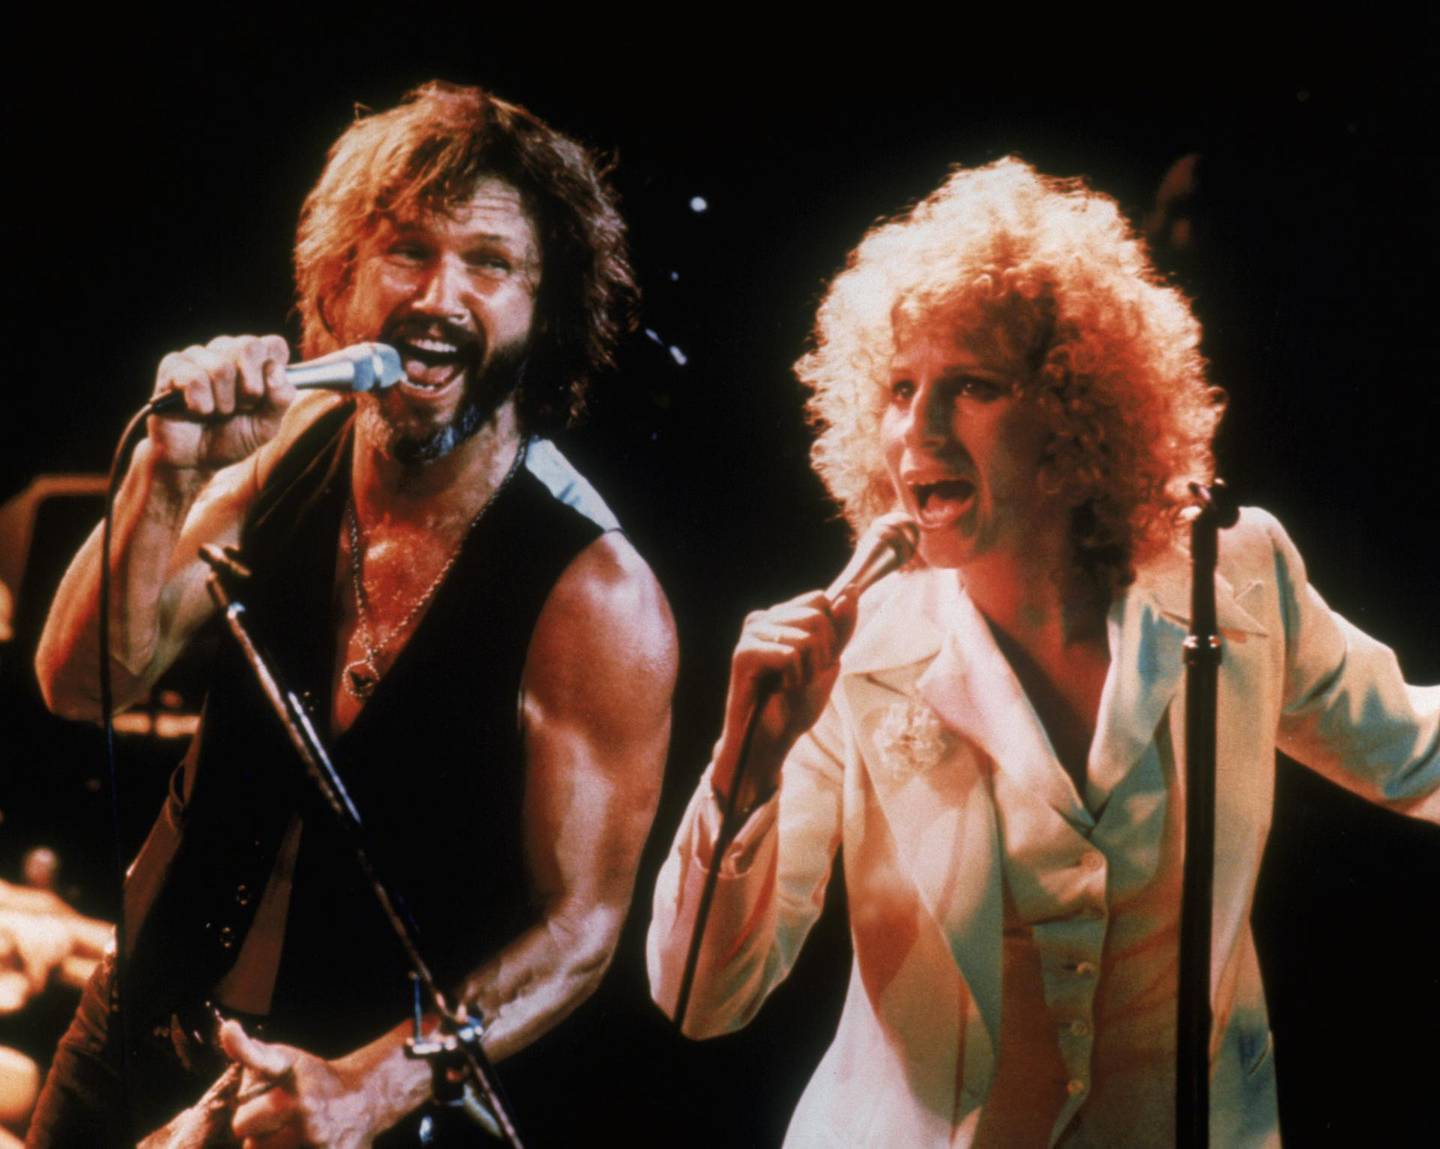 """RELEASE DATE: 1976. DIRECTOR: Frank Pierson. STUDIO: Warner Brothers. PLOT: Talented rock star John Norman Howard (Kris Kristofferson) has seen his career begin to decline. Too many years of concerts and managers and life on the road have made him cynical and the monotony has taken its toll. Then he meets the innocent, pure and very talented singer Esther Hoffman (Barbra Streisand). As one of his songs in the movie says """"I'm gonna take you girl, I'm gonna show you how."""" And he does. He shows Esther the way to stardom while forsaking his own career. As they fall in love, her success only makes his decline even more apparent. A love story for the time - and a great film it is. PICTURED: BARBRA STREISAND, KRIS KRISTOFFERSON. Courtesy Warner Bros."""